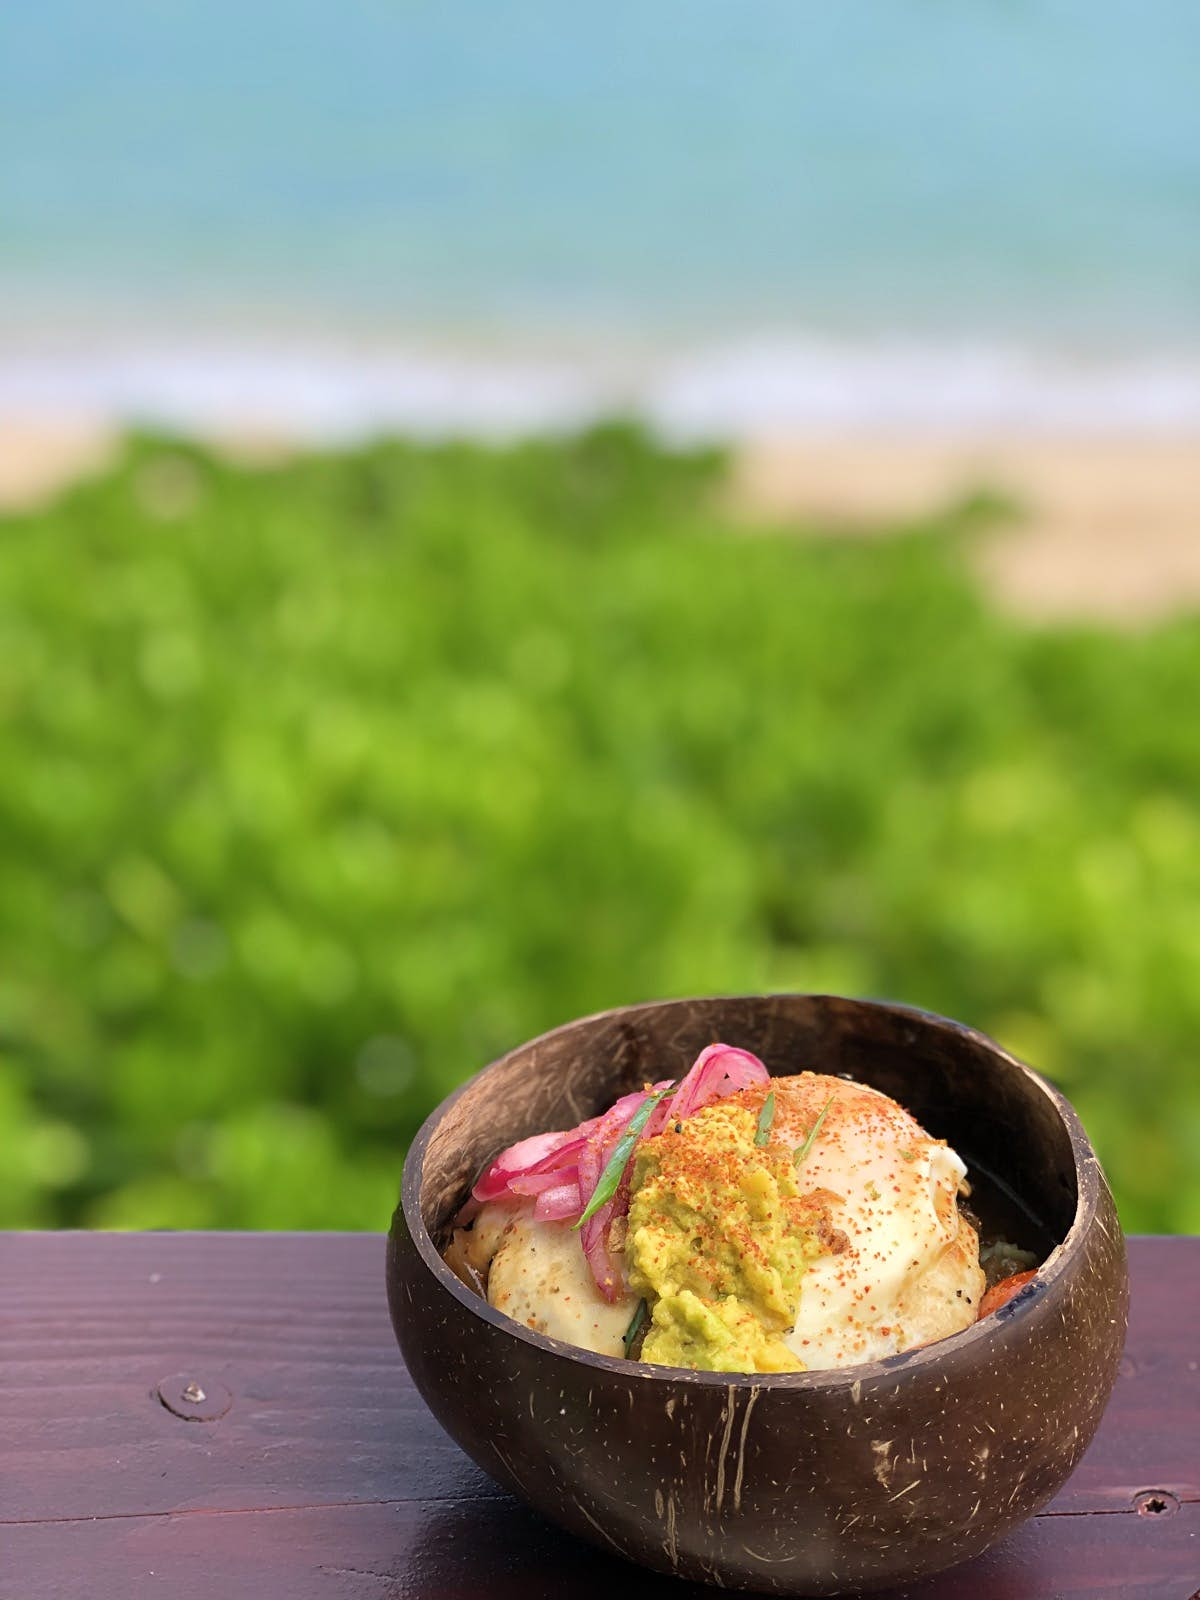 A small brown bowl - possibly a coconut - has some hawaiian food in it. You can see a beach in the background